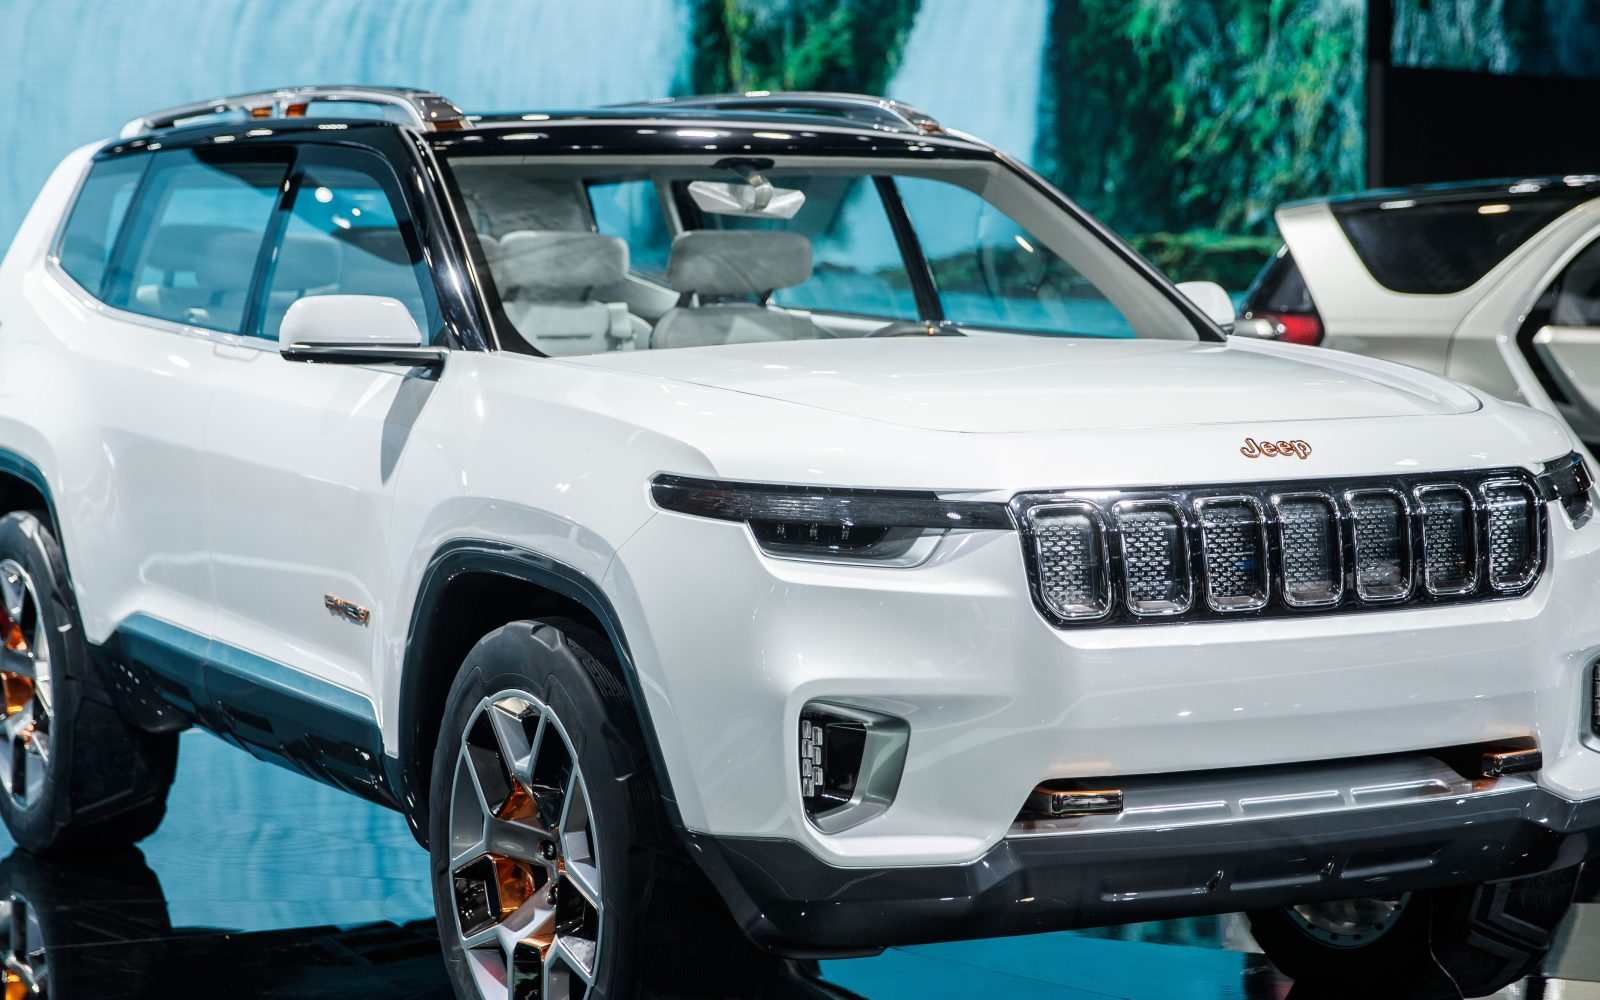 jeep 39 s plug in hybrid suv concept debuts with a 40 miles all electric range electrek. Black Bedroom Furniture Sets. Home Design Ideas